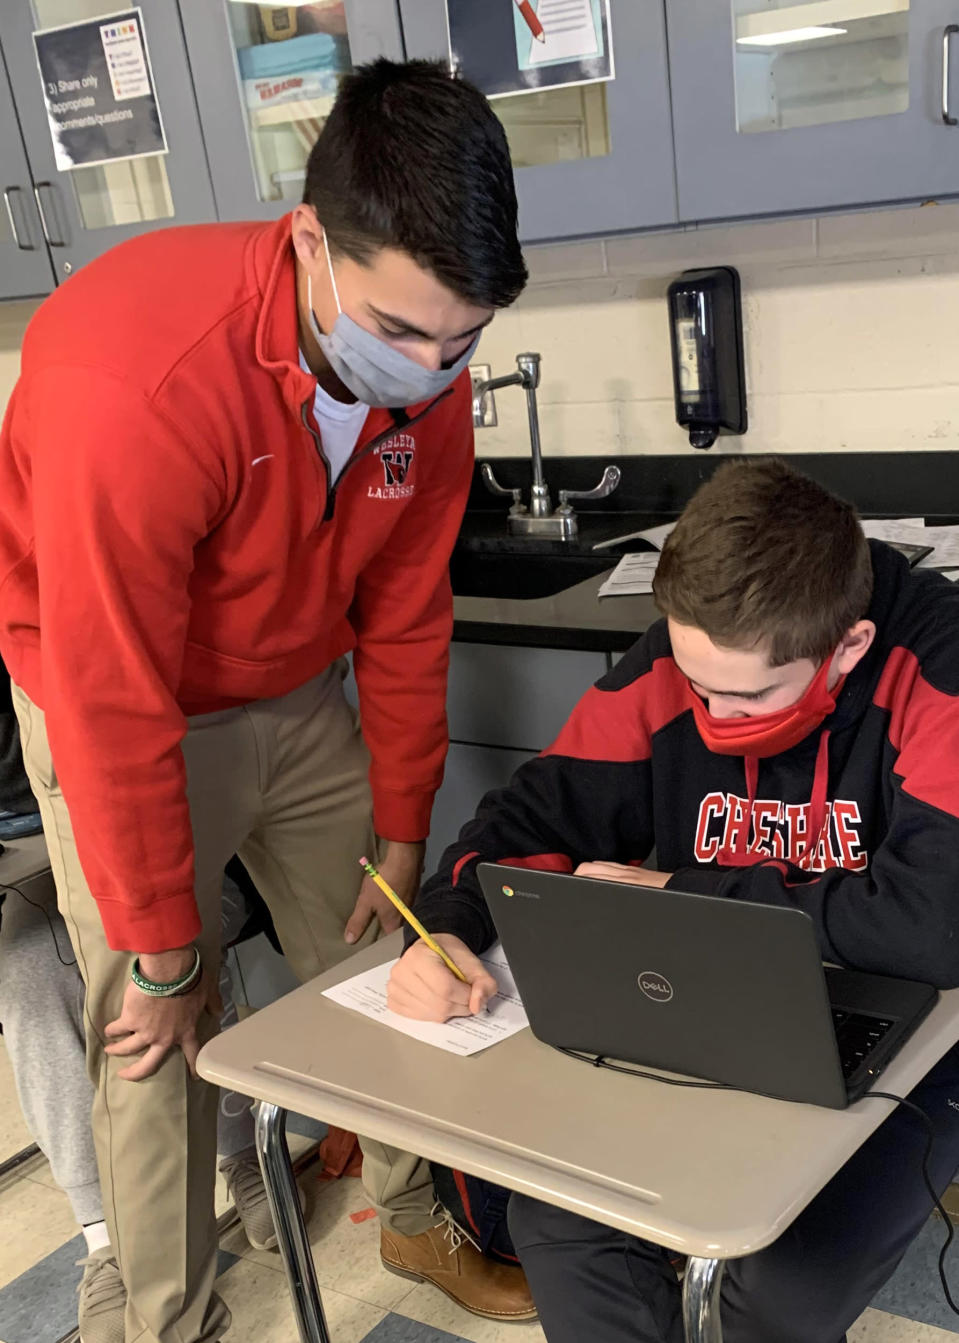 IMage: Jack Raba, a recent Cheshire Public Schools graduate, works with seventh grader Cody Persico at Dodd Middle School. Raba is one of about 50 graduates who answered the superintendent's appeal to help out by substitute teaching during the pandemic. (Courtesy of Cheshire Public Schools)